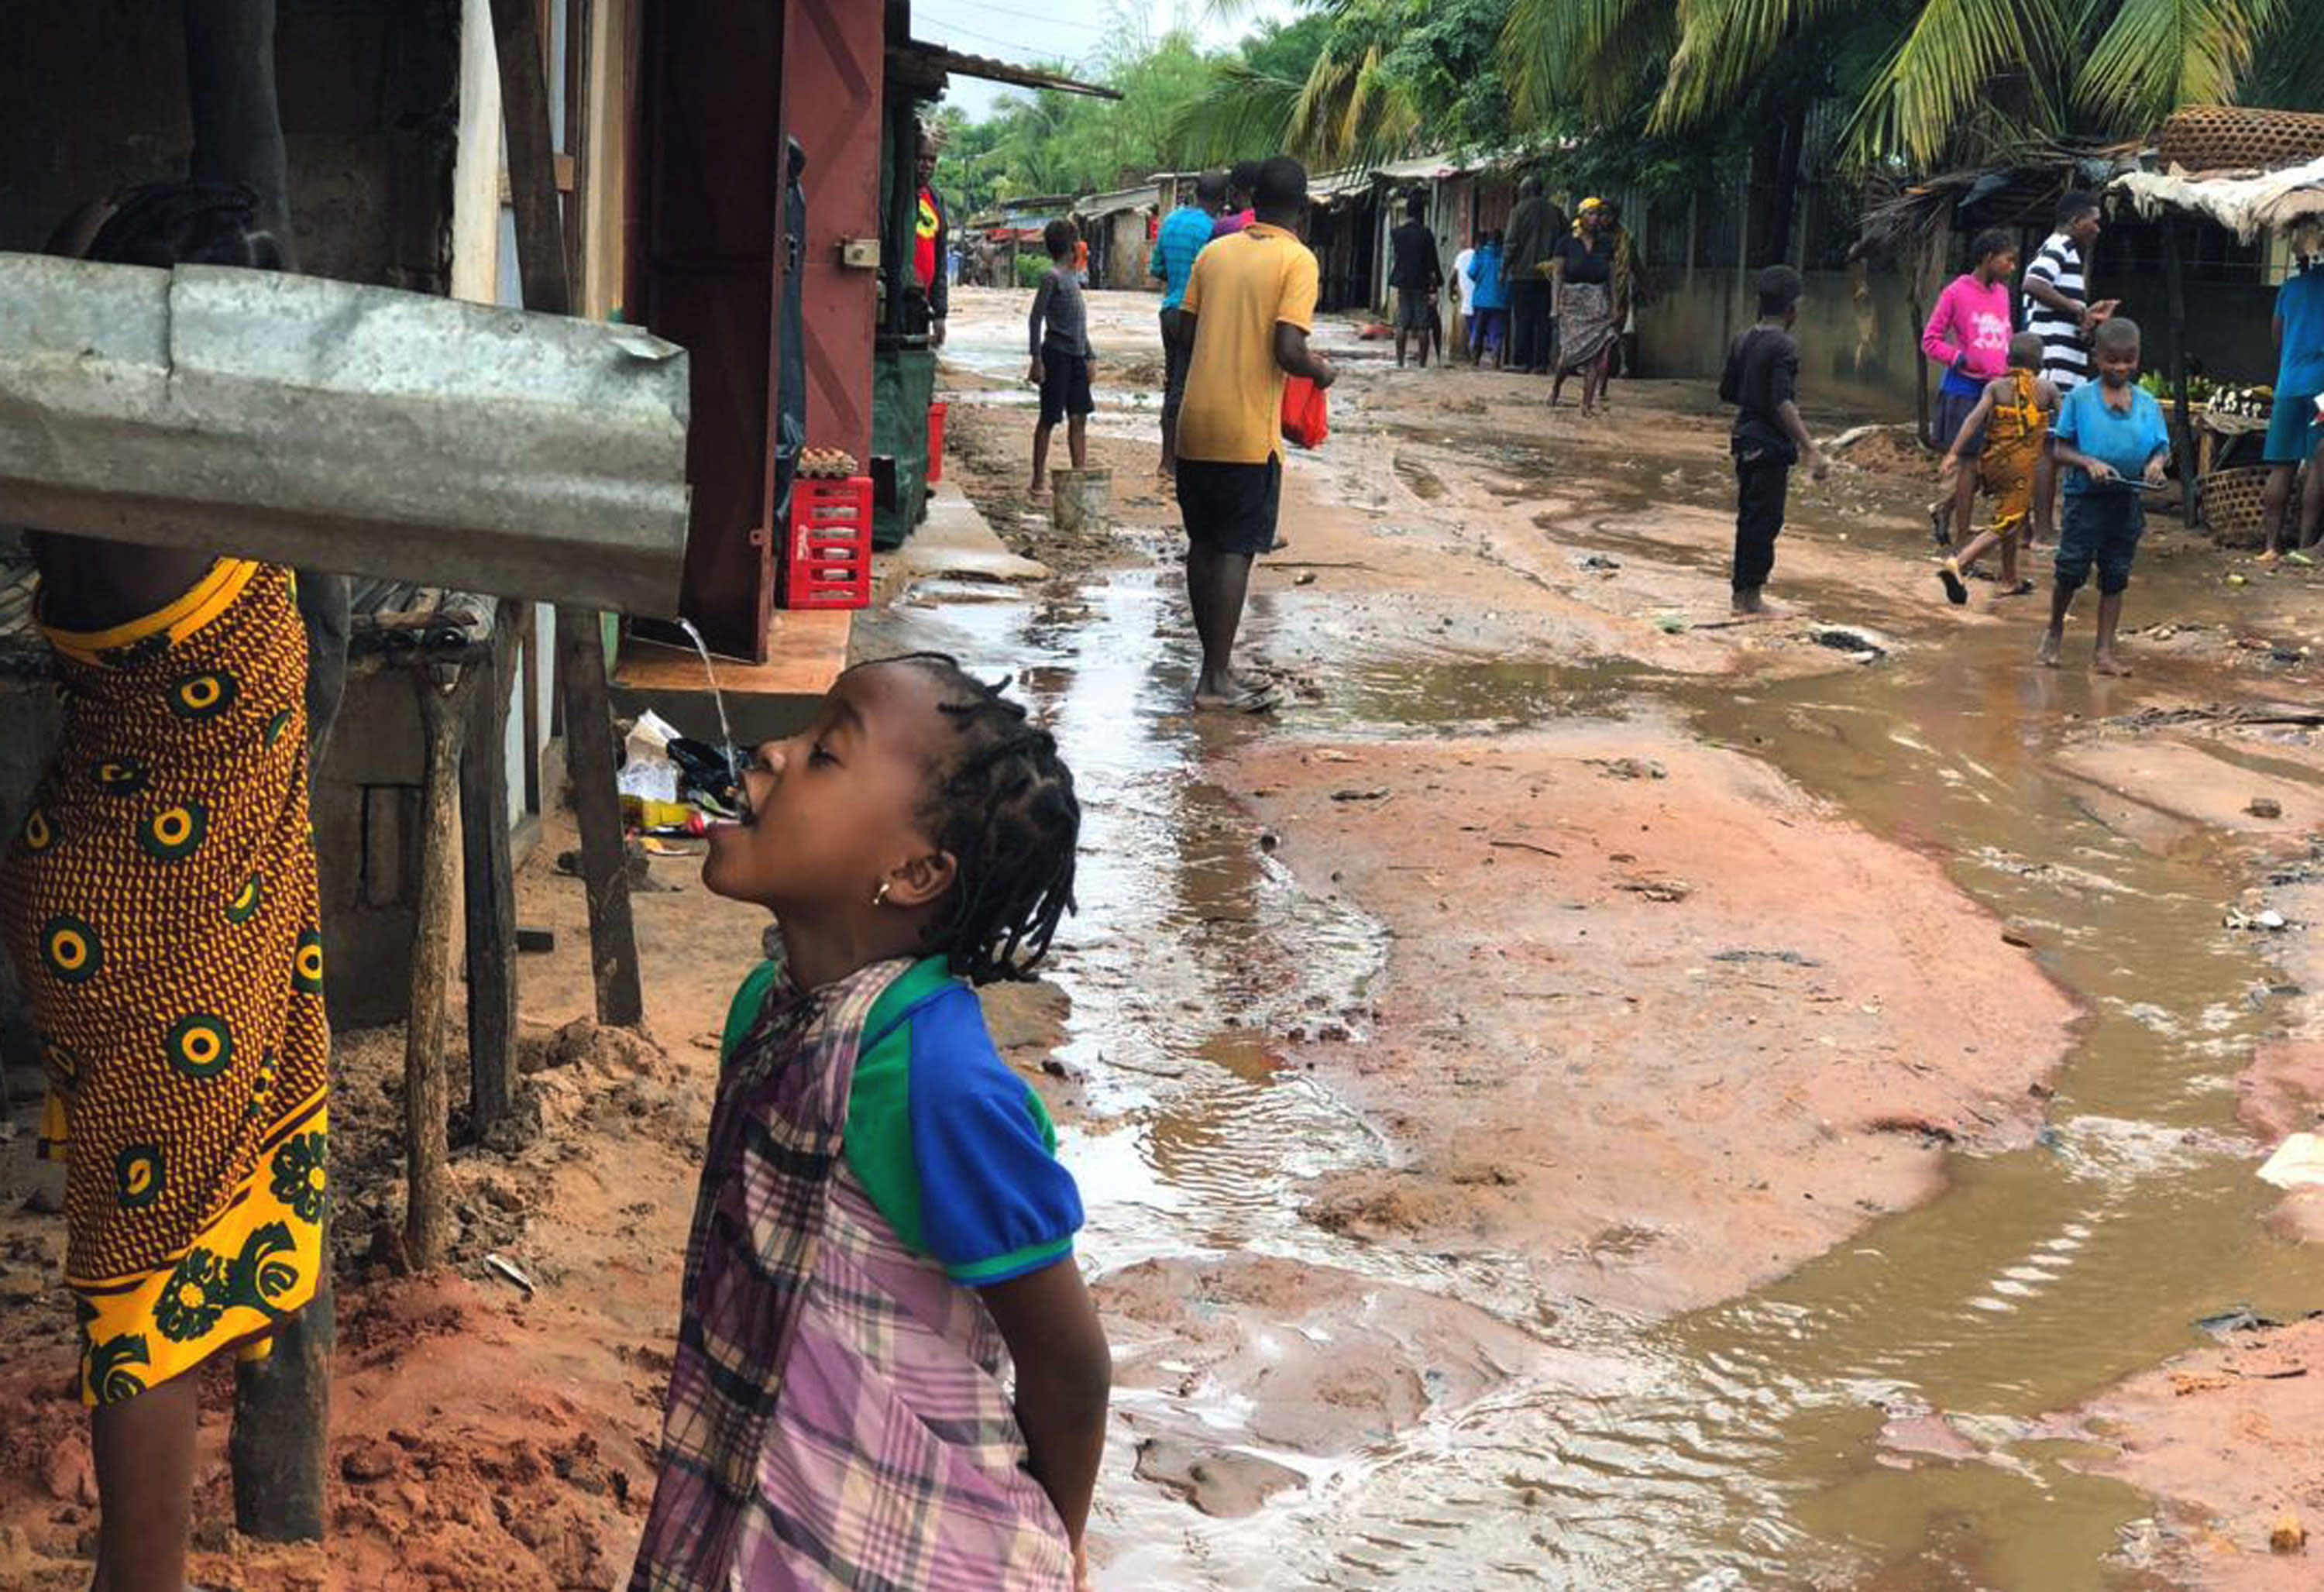 A child drinks water from a gutter during floods due to heavy rains in Pemba, Mozambique, Sunday, April 28, 2019. Serious flooding began on Sunday in parts of northern Mozambique that were hit by Cyclone Kenneth three days ago, with waters waist-high in areas, after the government urged many people to immediately seek higher ground. Hundreds of thousands of people were at risk. (AP Photo/Tsvangirayi Mukwazhi)